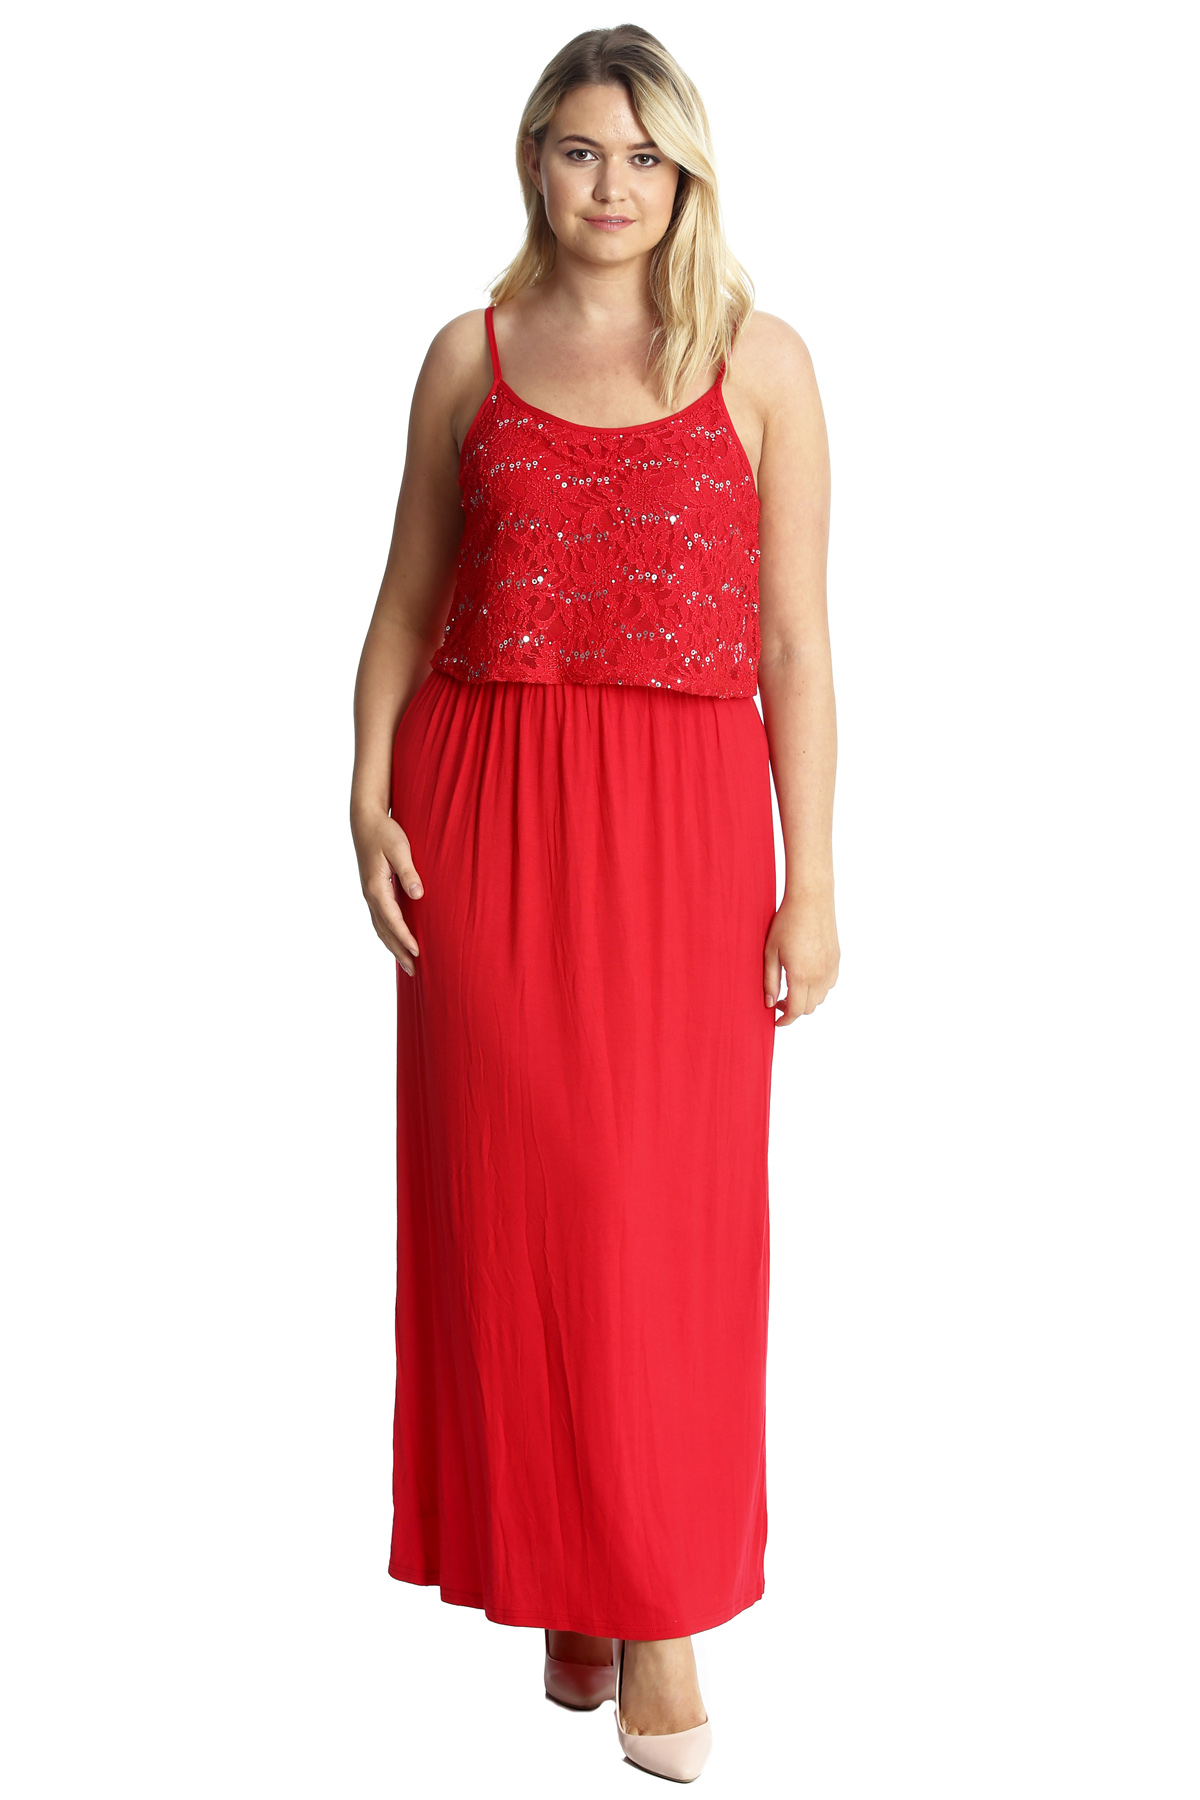 Find great deals on eBay for new maxi dress. Shop with confidence.